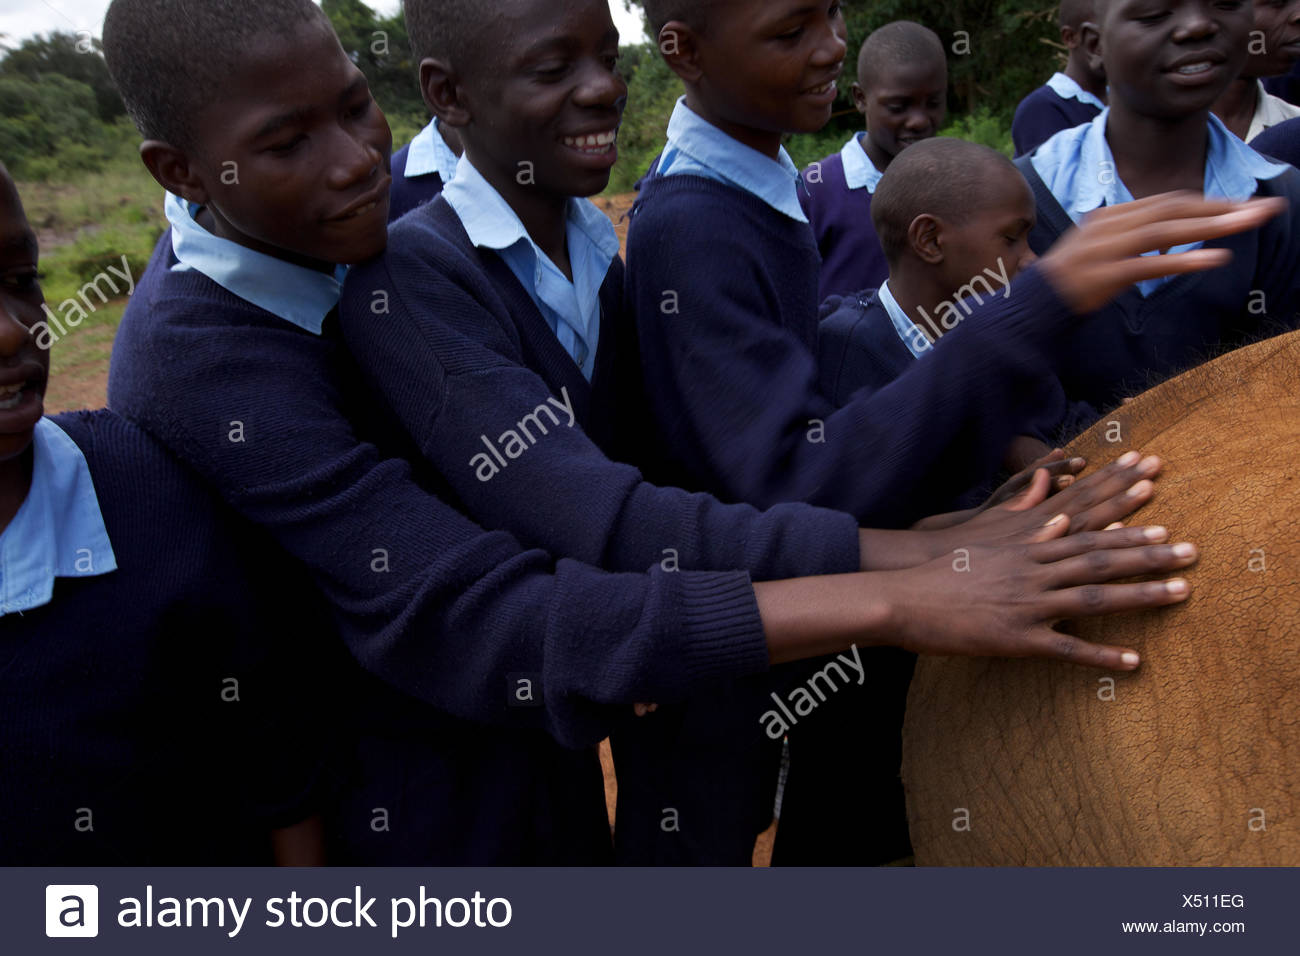 An elephant orphan is touched by visiting schoolchildren. - Stock Image